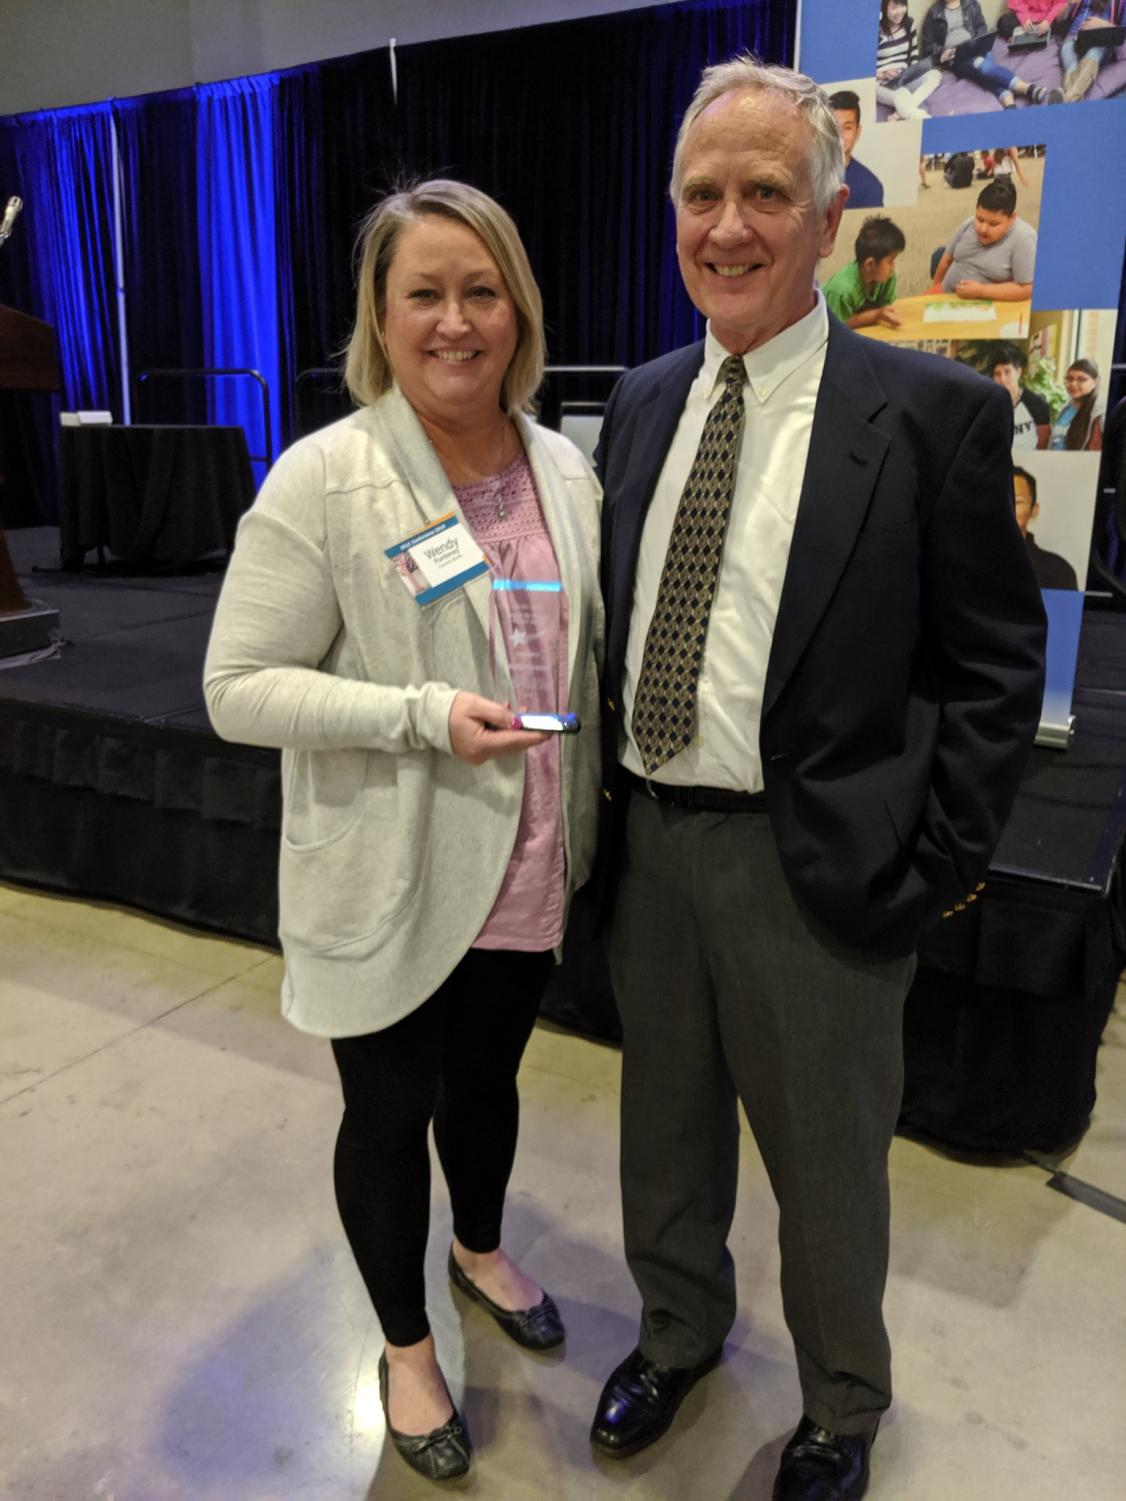 Mrs. Wendy Punteney received the Dan Chavez Beyond the Horizon Teacher award for 2019. She is pictured here with her nominator, and TJ teacher, Jim DeMott.